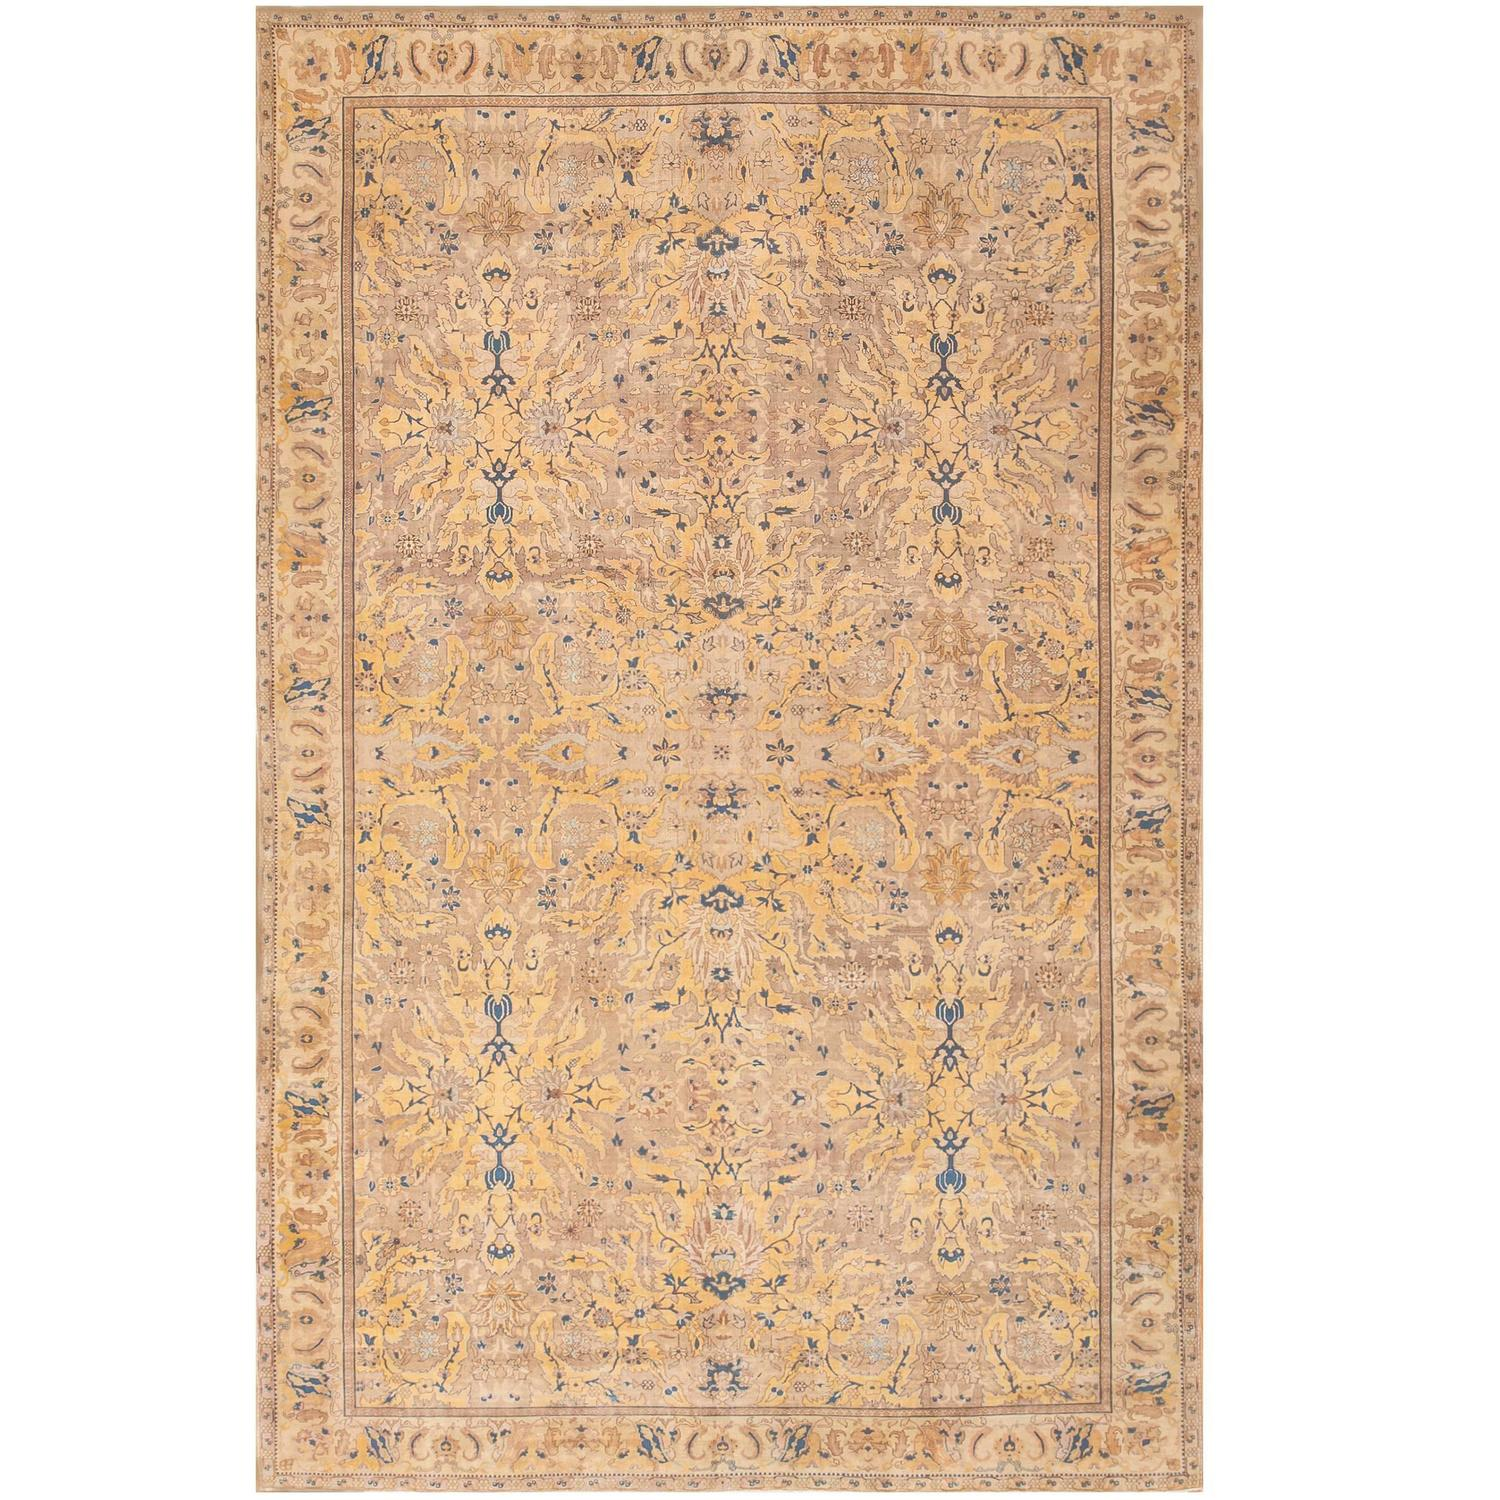 British India Rug: Large Polonaise Antique Indian Rug For Sale At 1stdibs